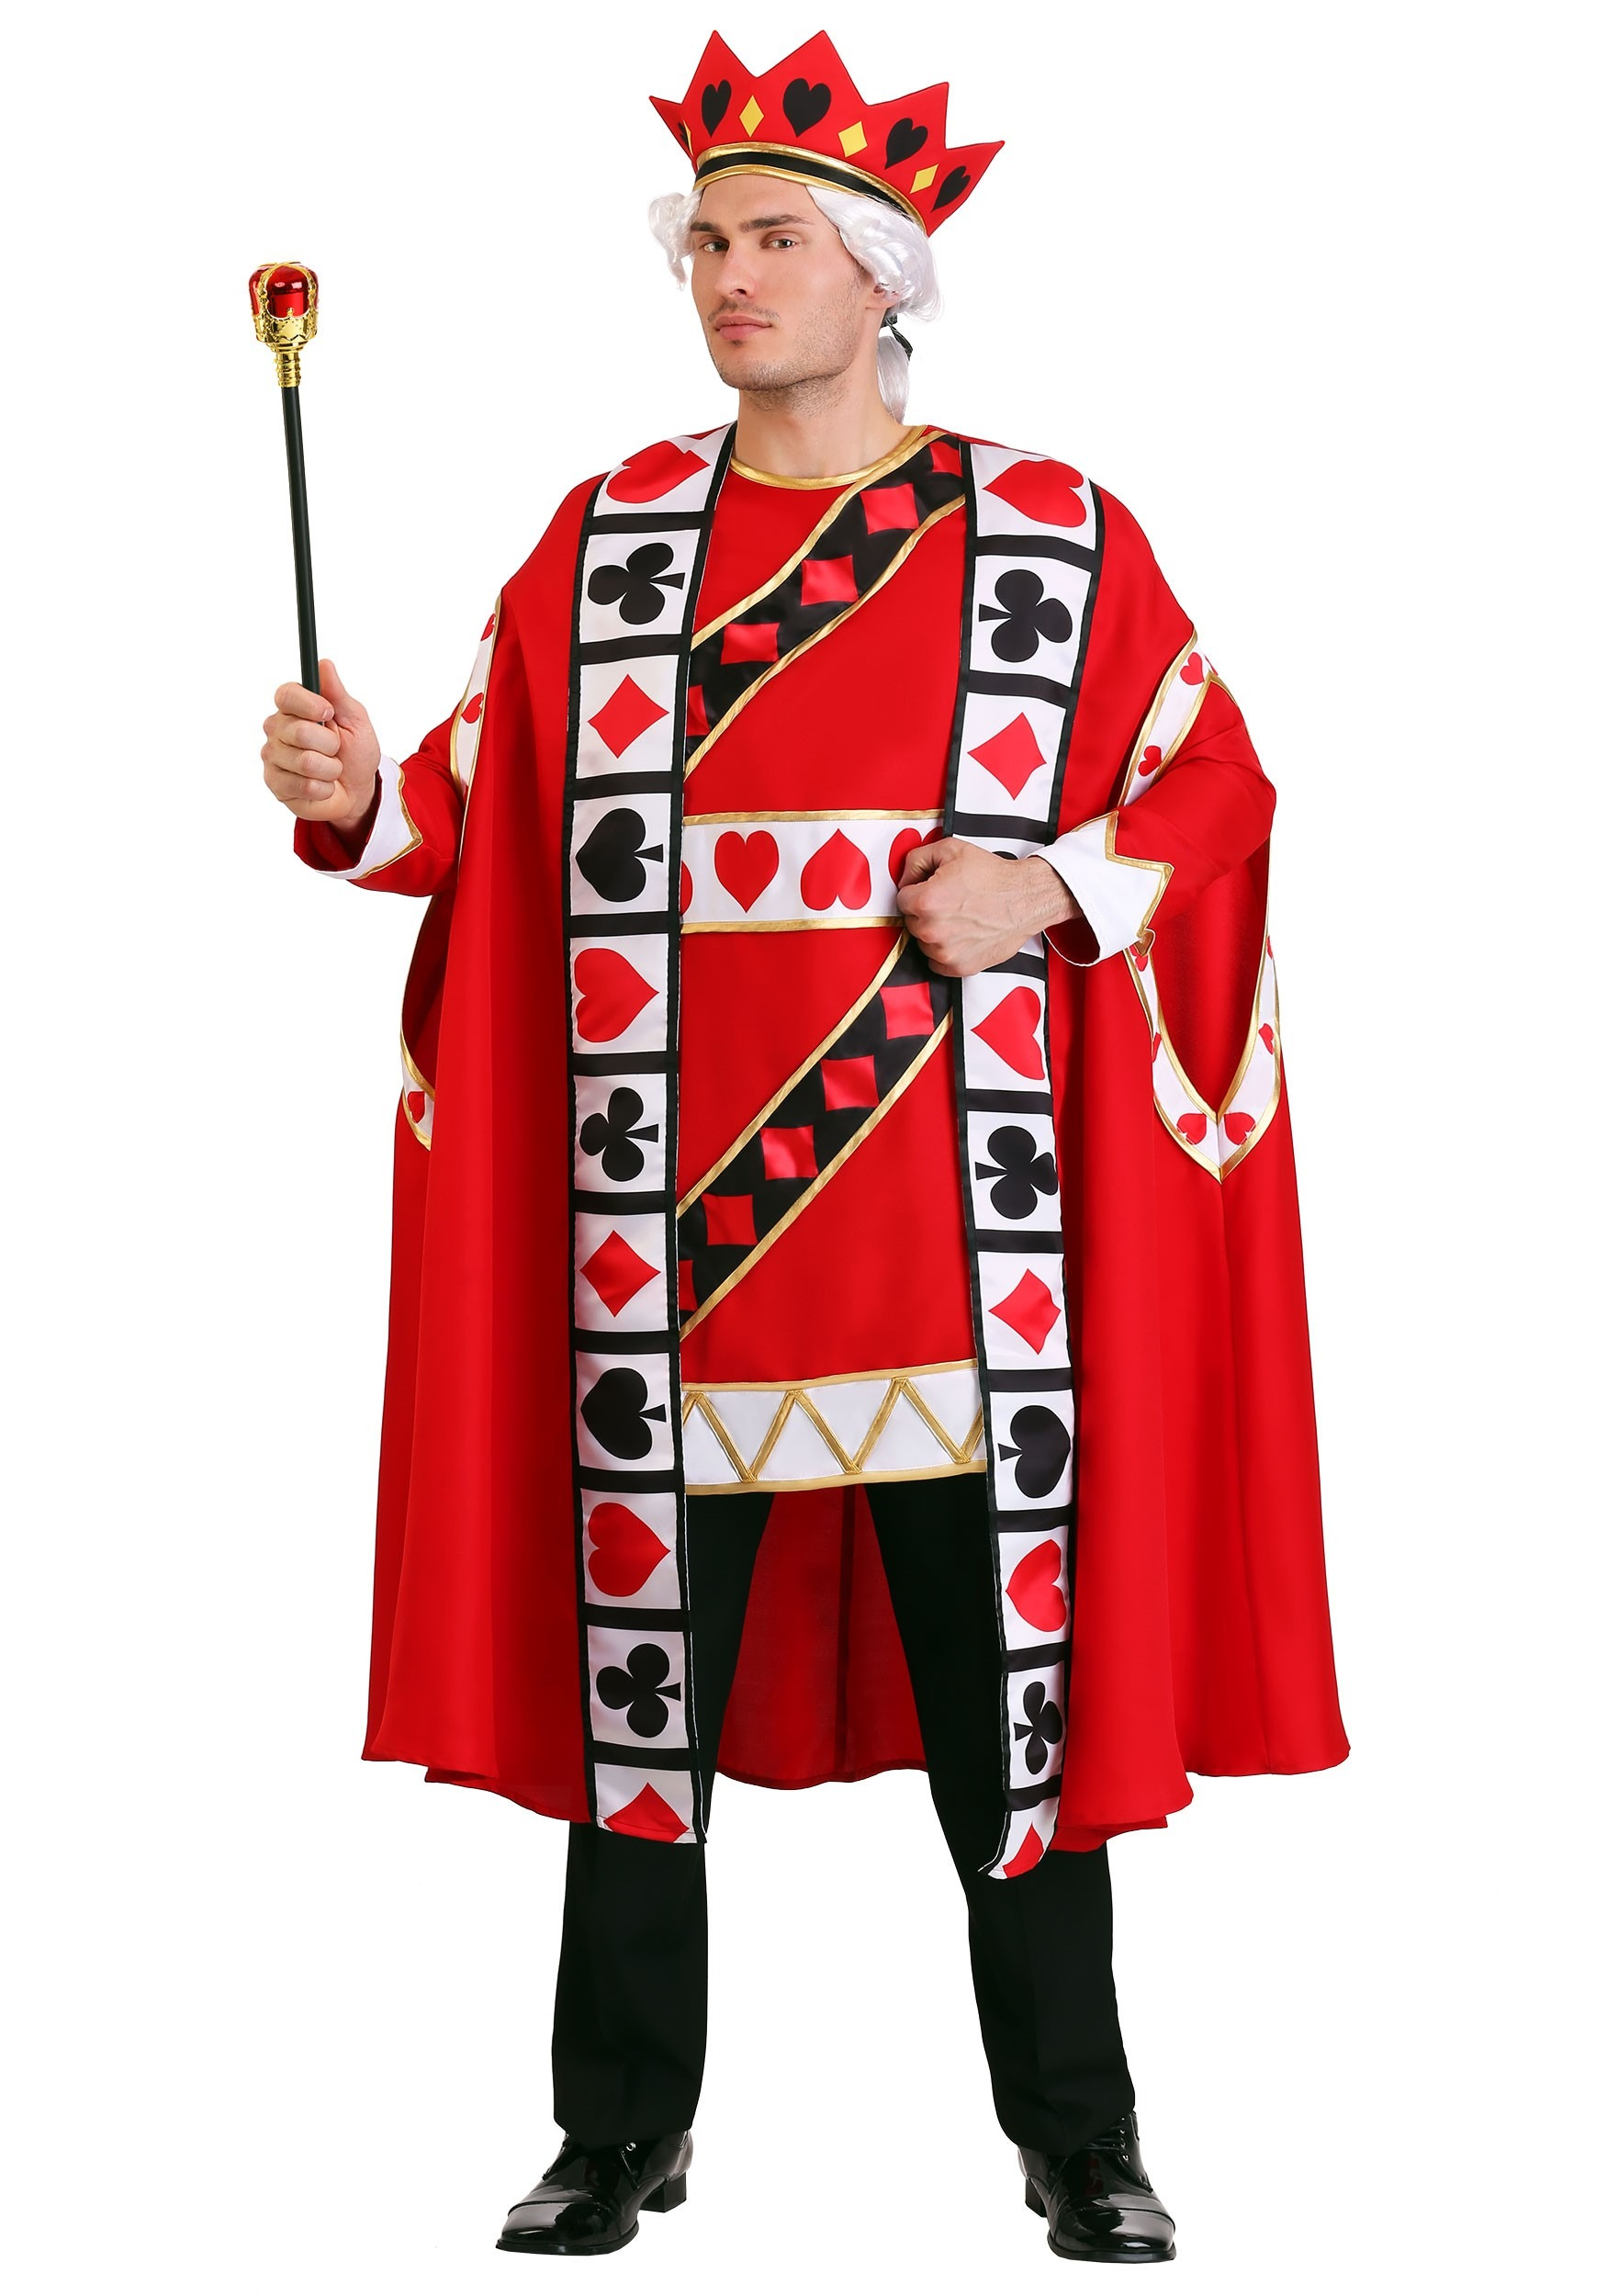 Men's King of Hearts Plus Size Tunic and Hat Costumes - DeluxeAdultCostumes.com